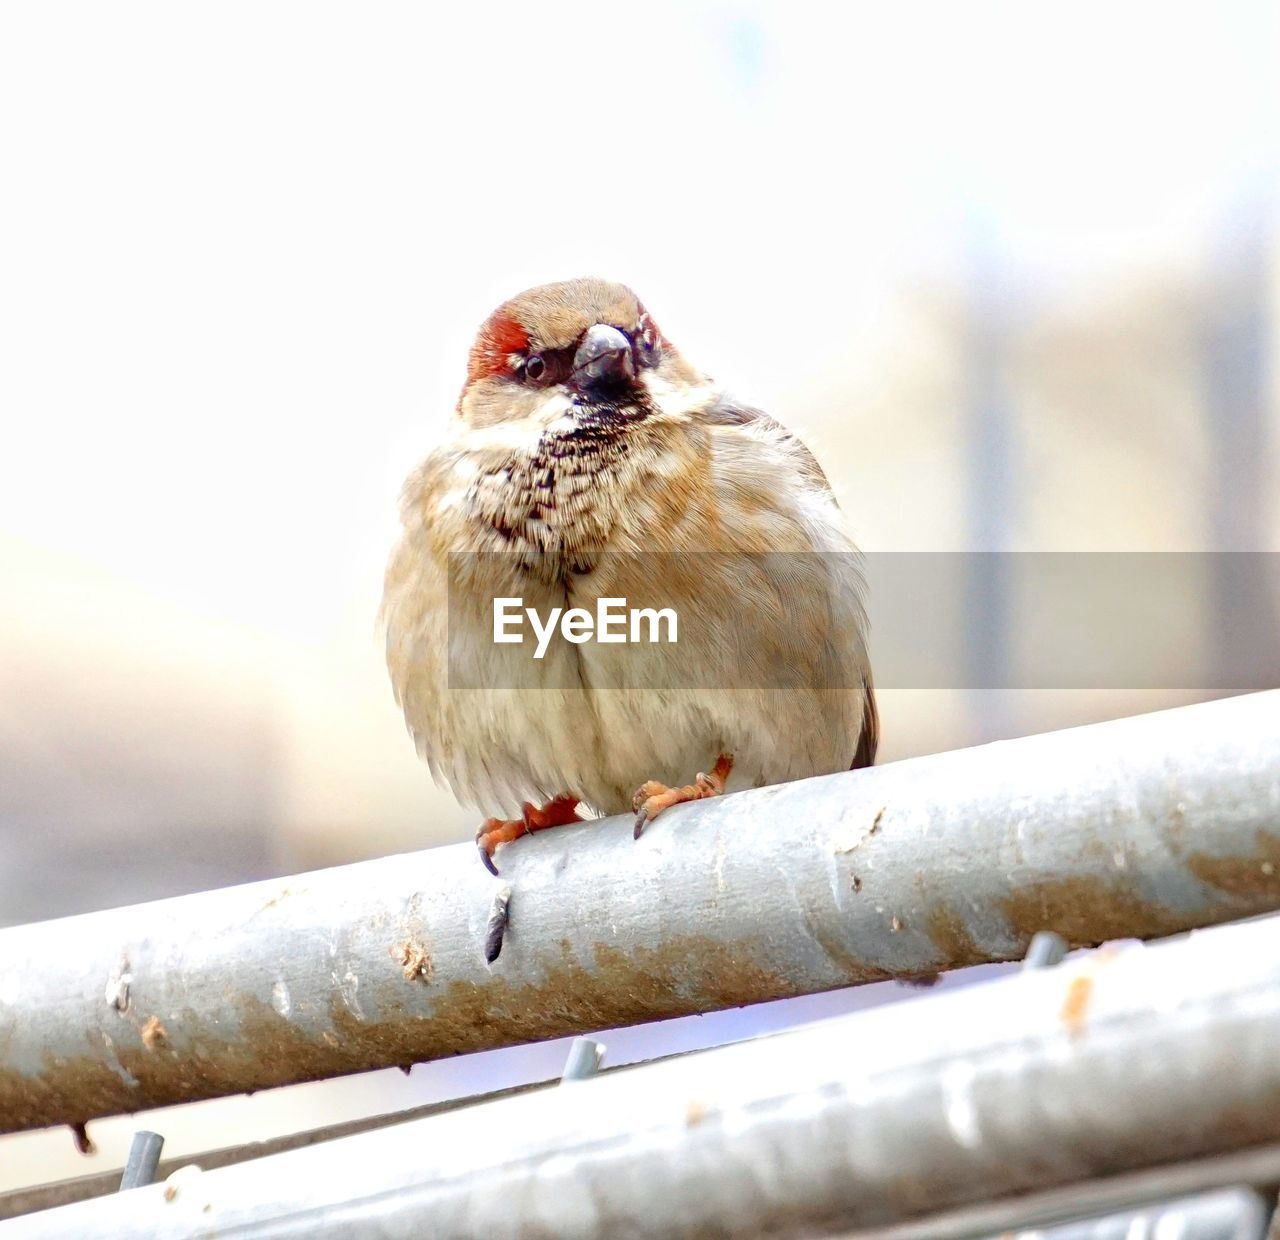 bird, animal themes, animals in the wild, one animal, focus on foreground, perching, day, animal wildlife, no people, close-up, outdoors, winter, sparrow, nature